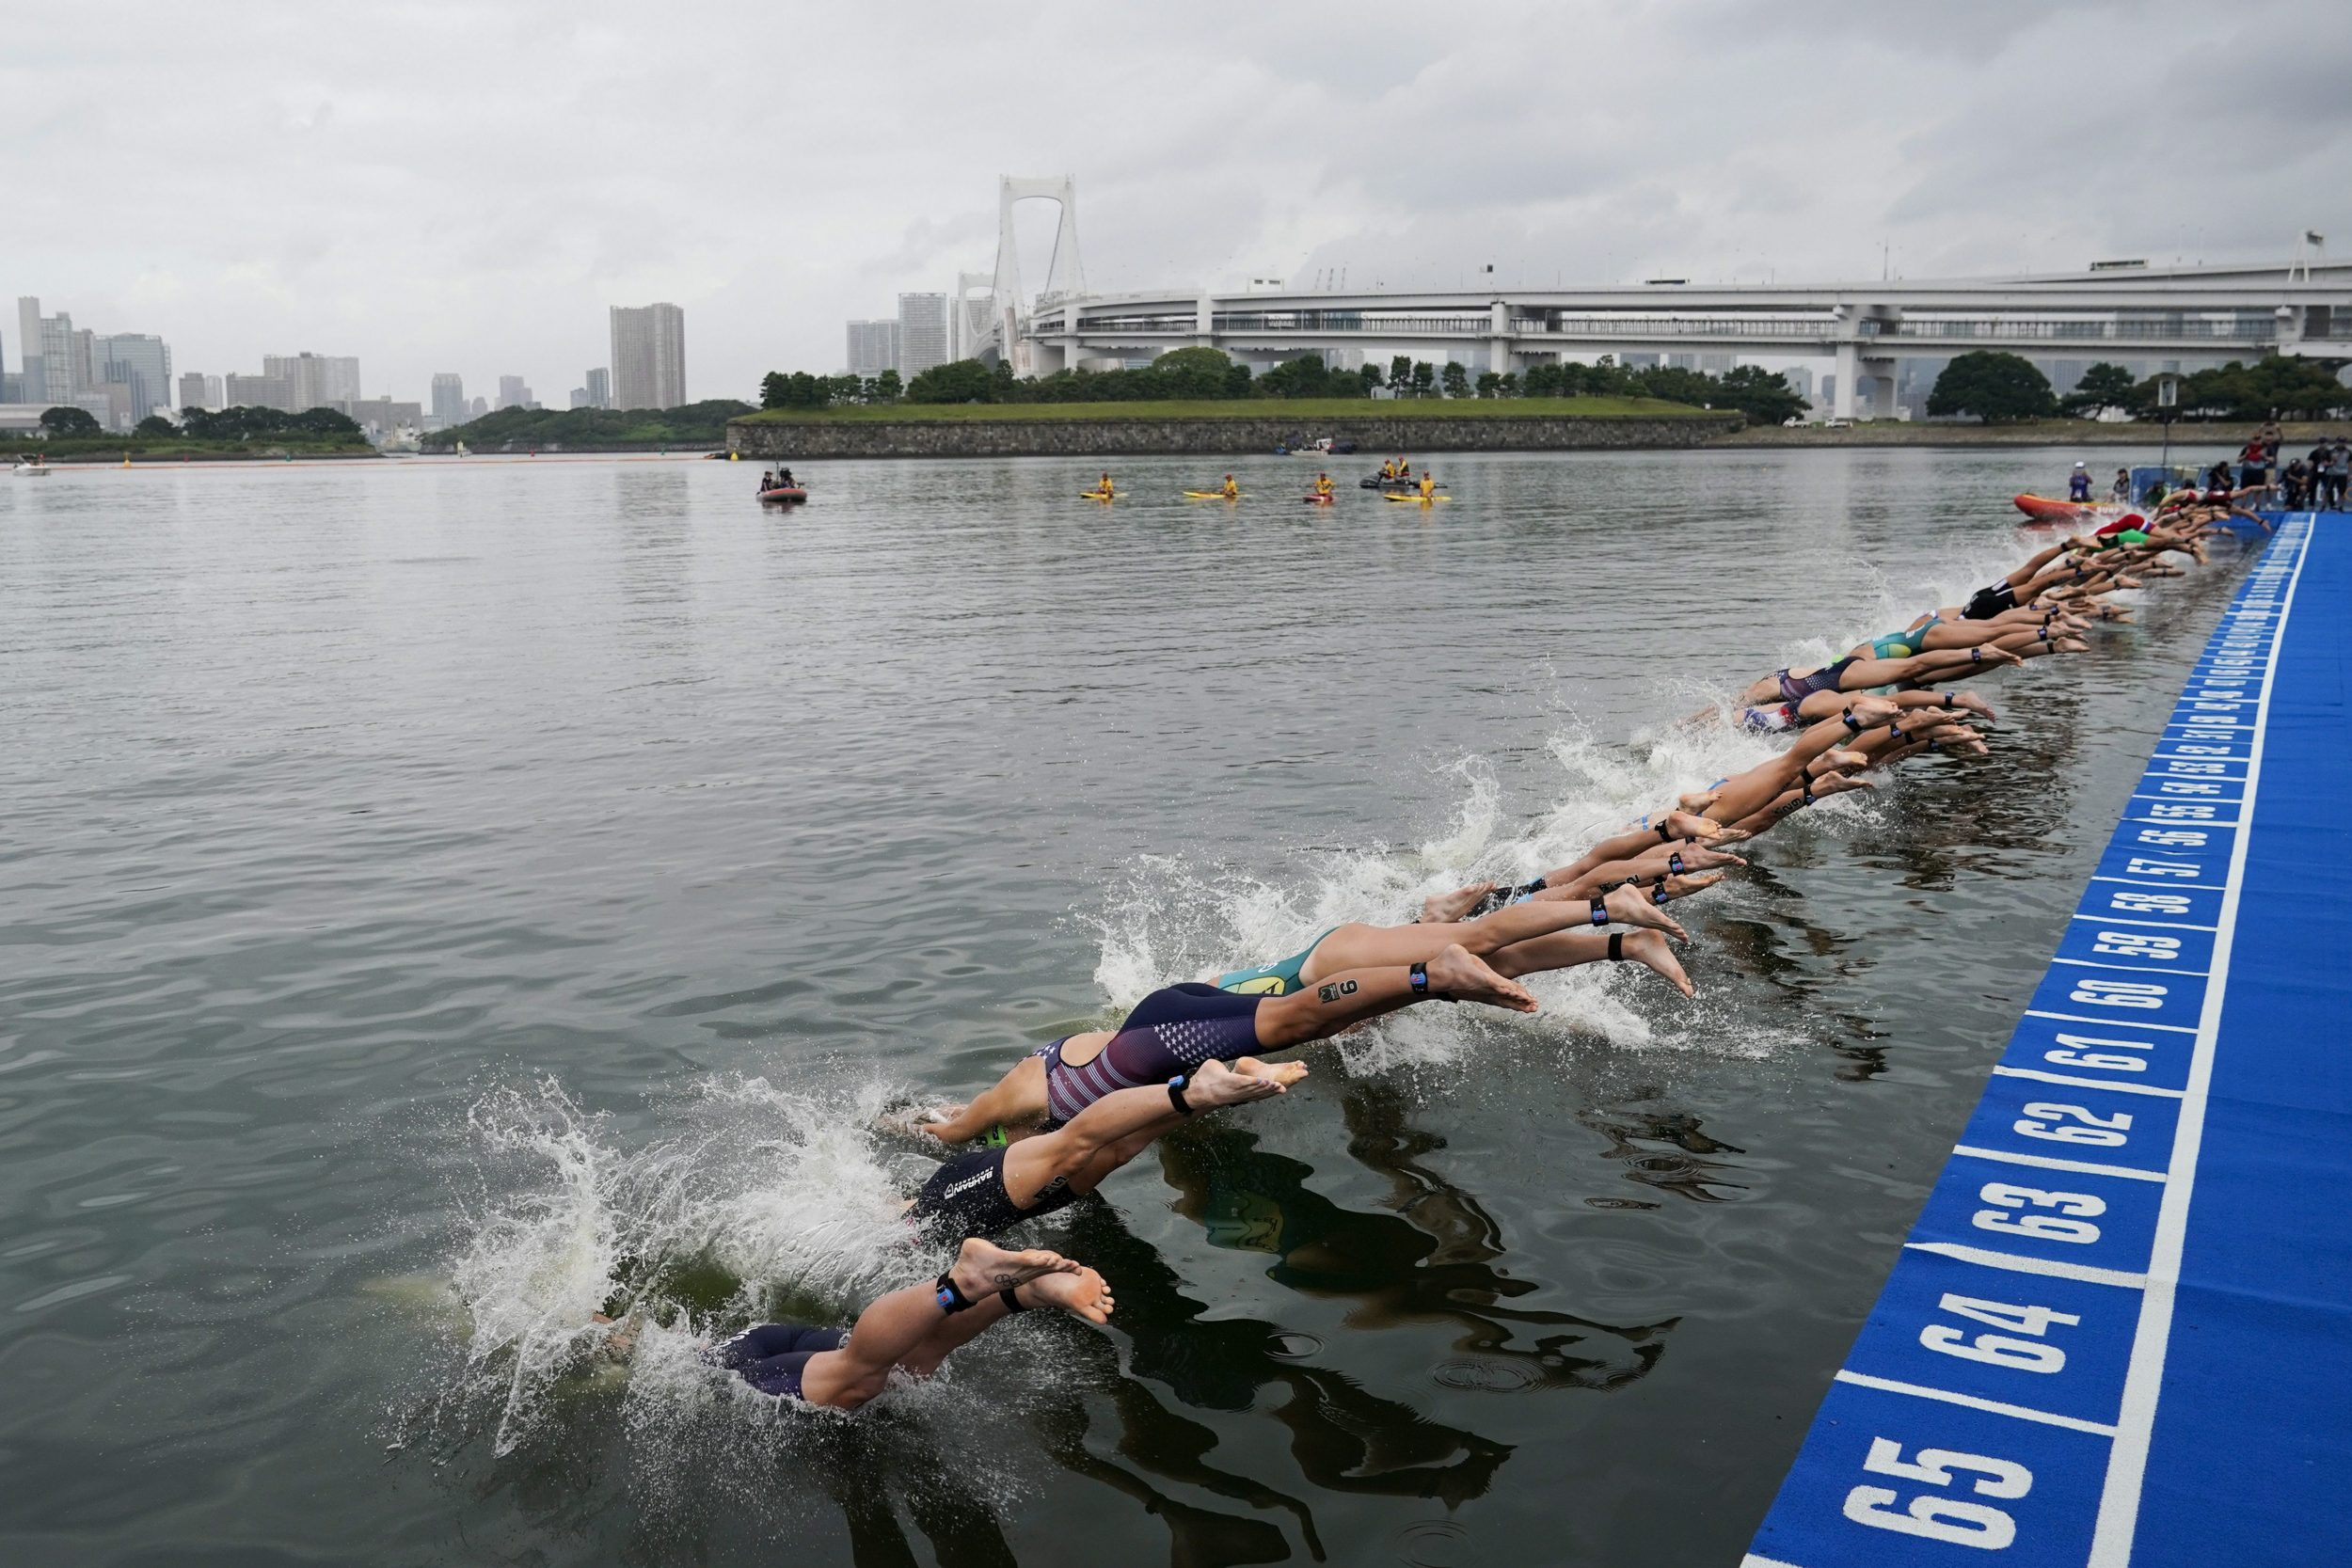 Women dive into water at Triathlon test event at the Odaiba Marine Park